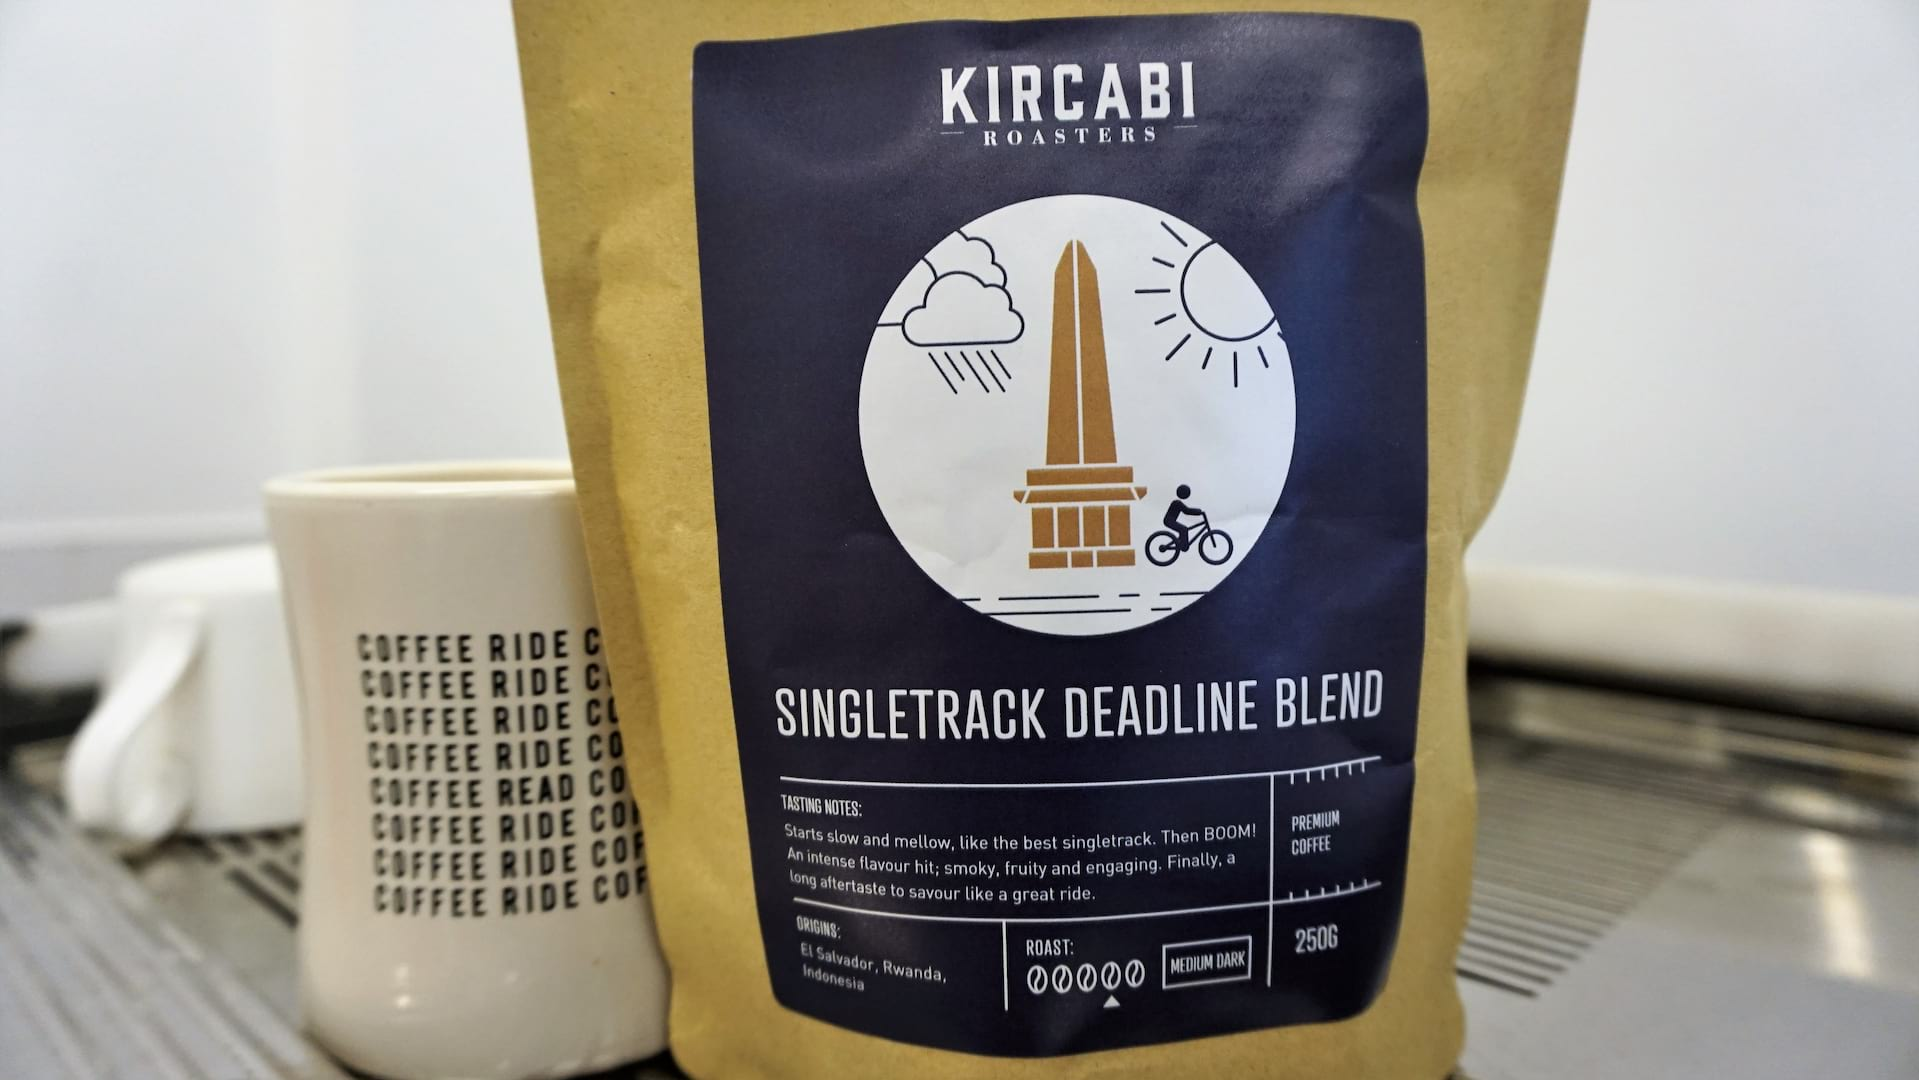 singletrack deadline blend coffee kircabi roasters